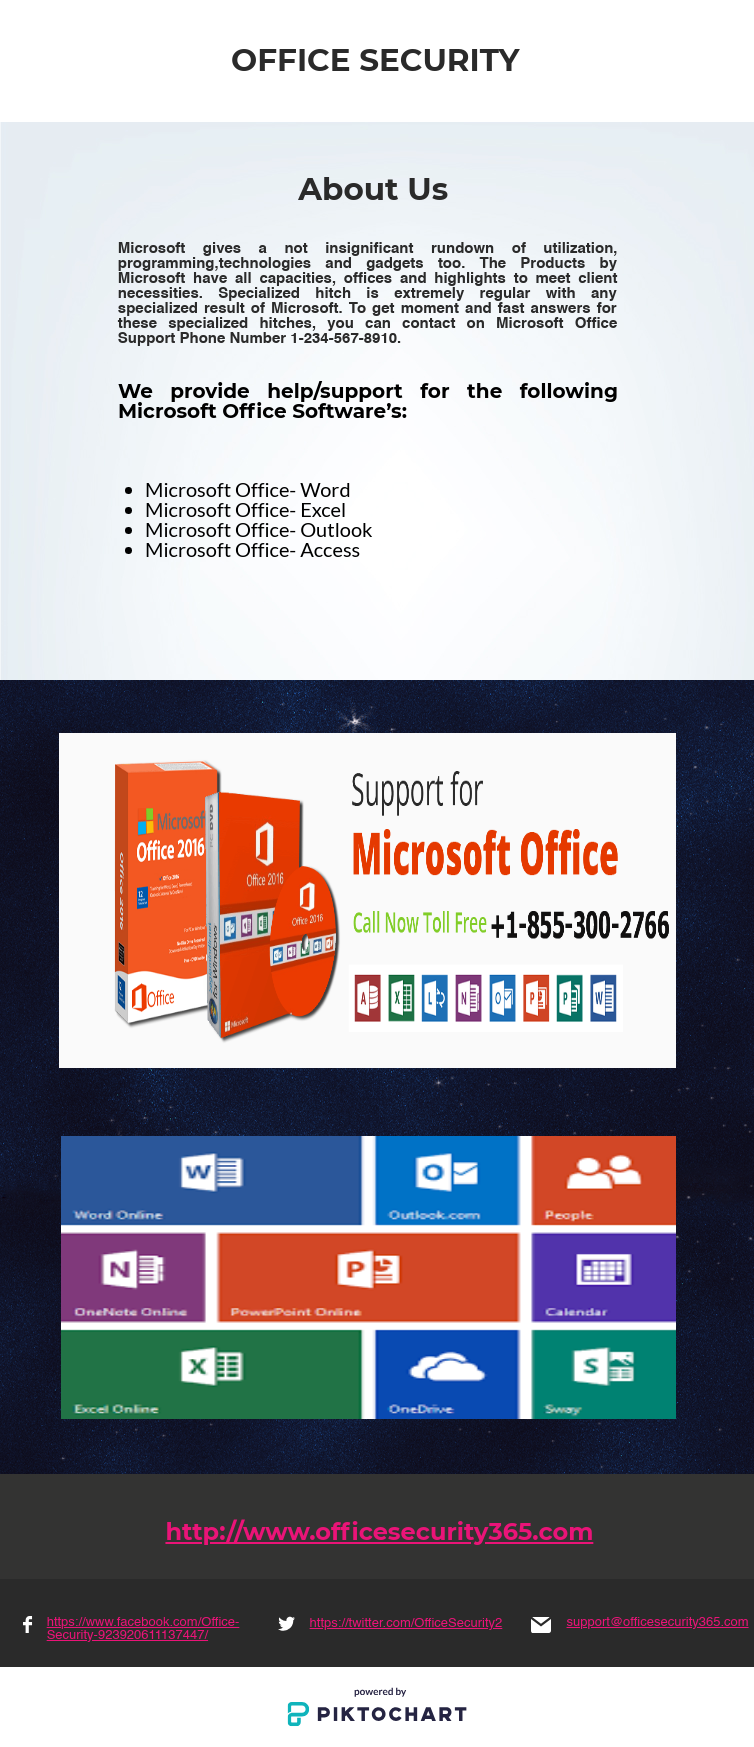 If you're facing problems with Microsoft office support or